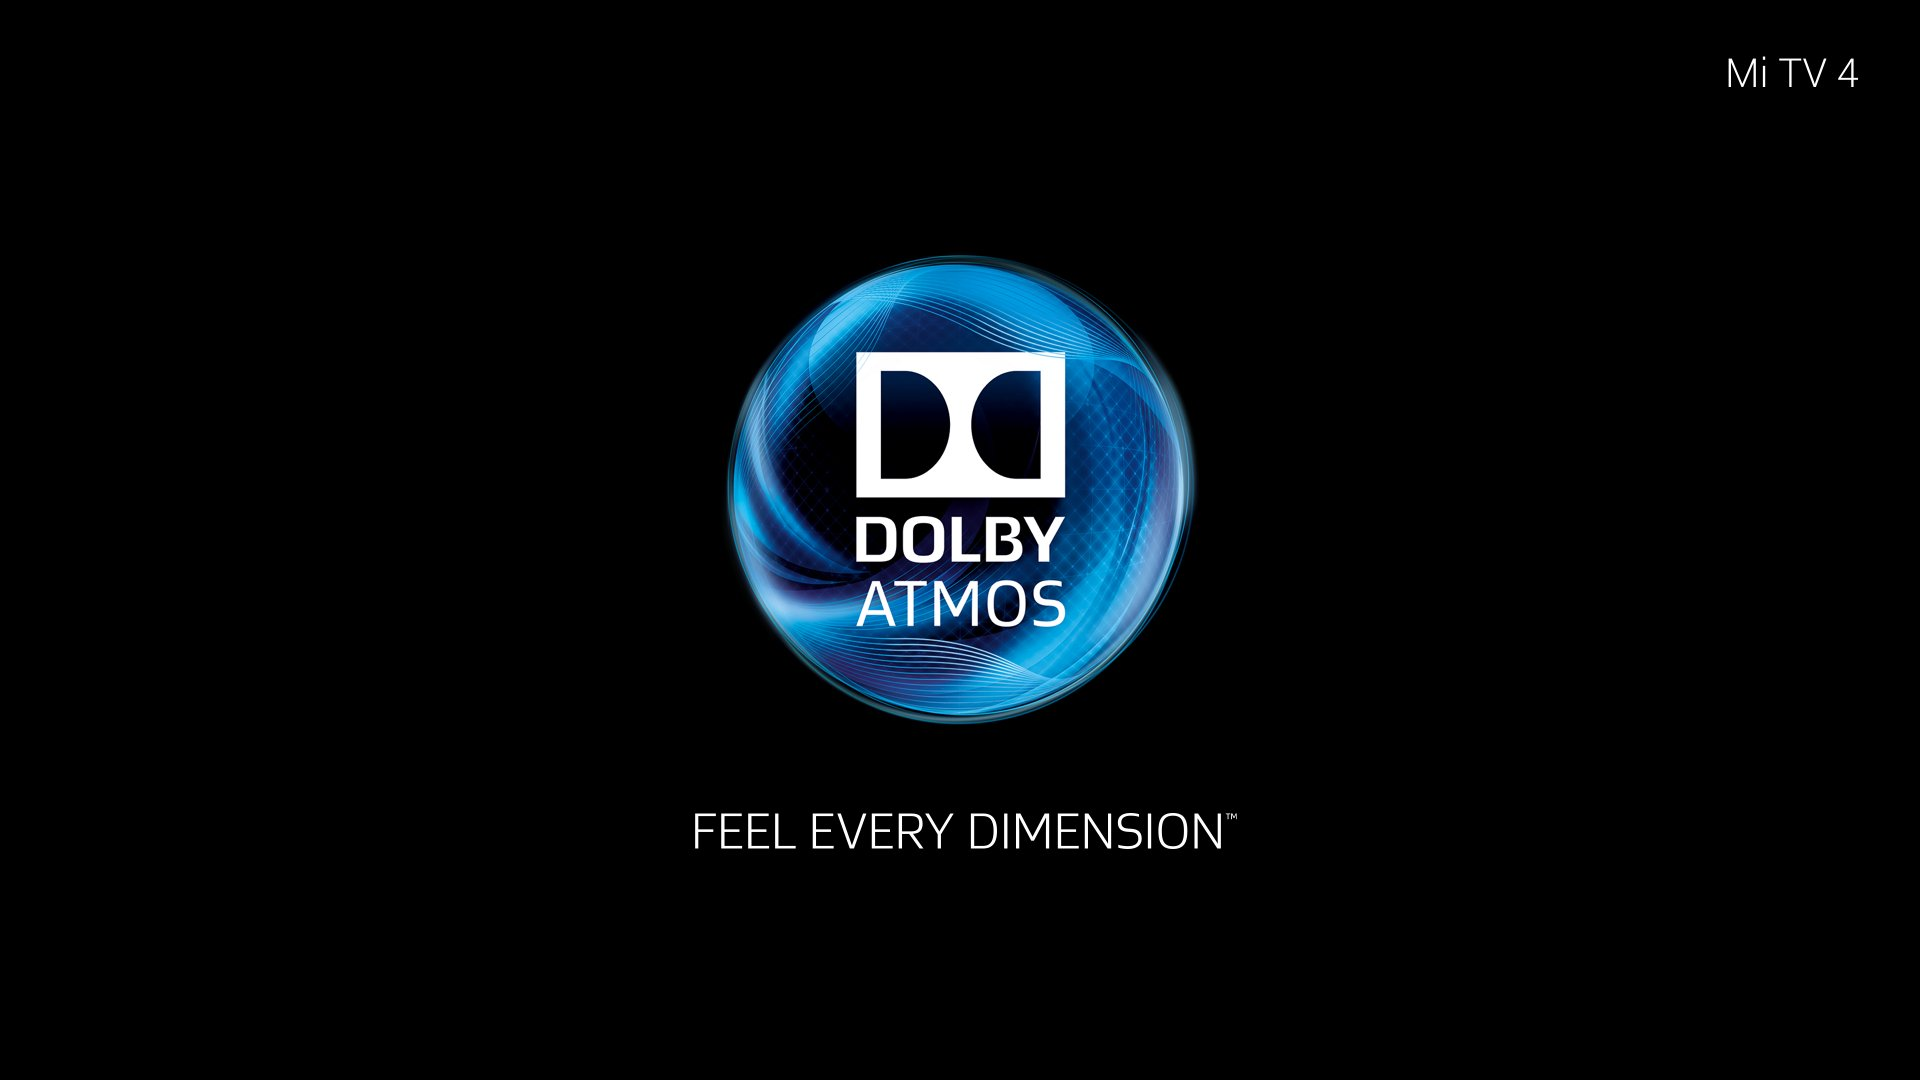 Mi On Twitter Quot It Also Comes With Dolby Atmos Sound